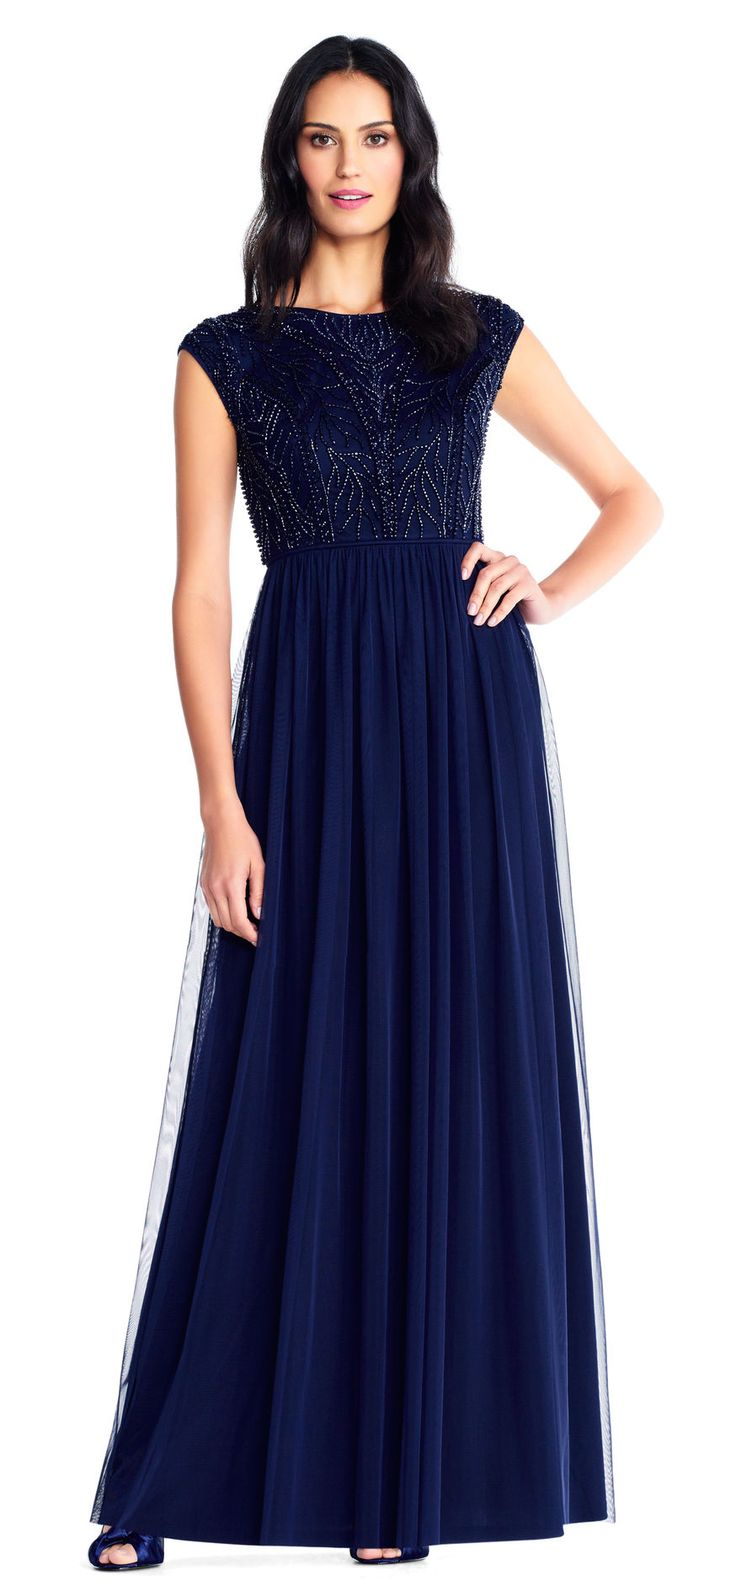 Adrianna Papell   Vine Beaded Chiffon Gown with Cap Sleeves